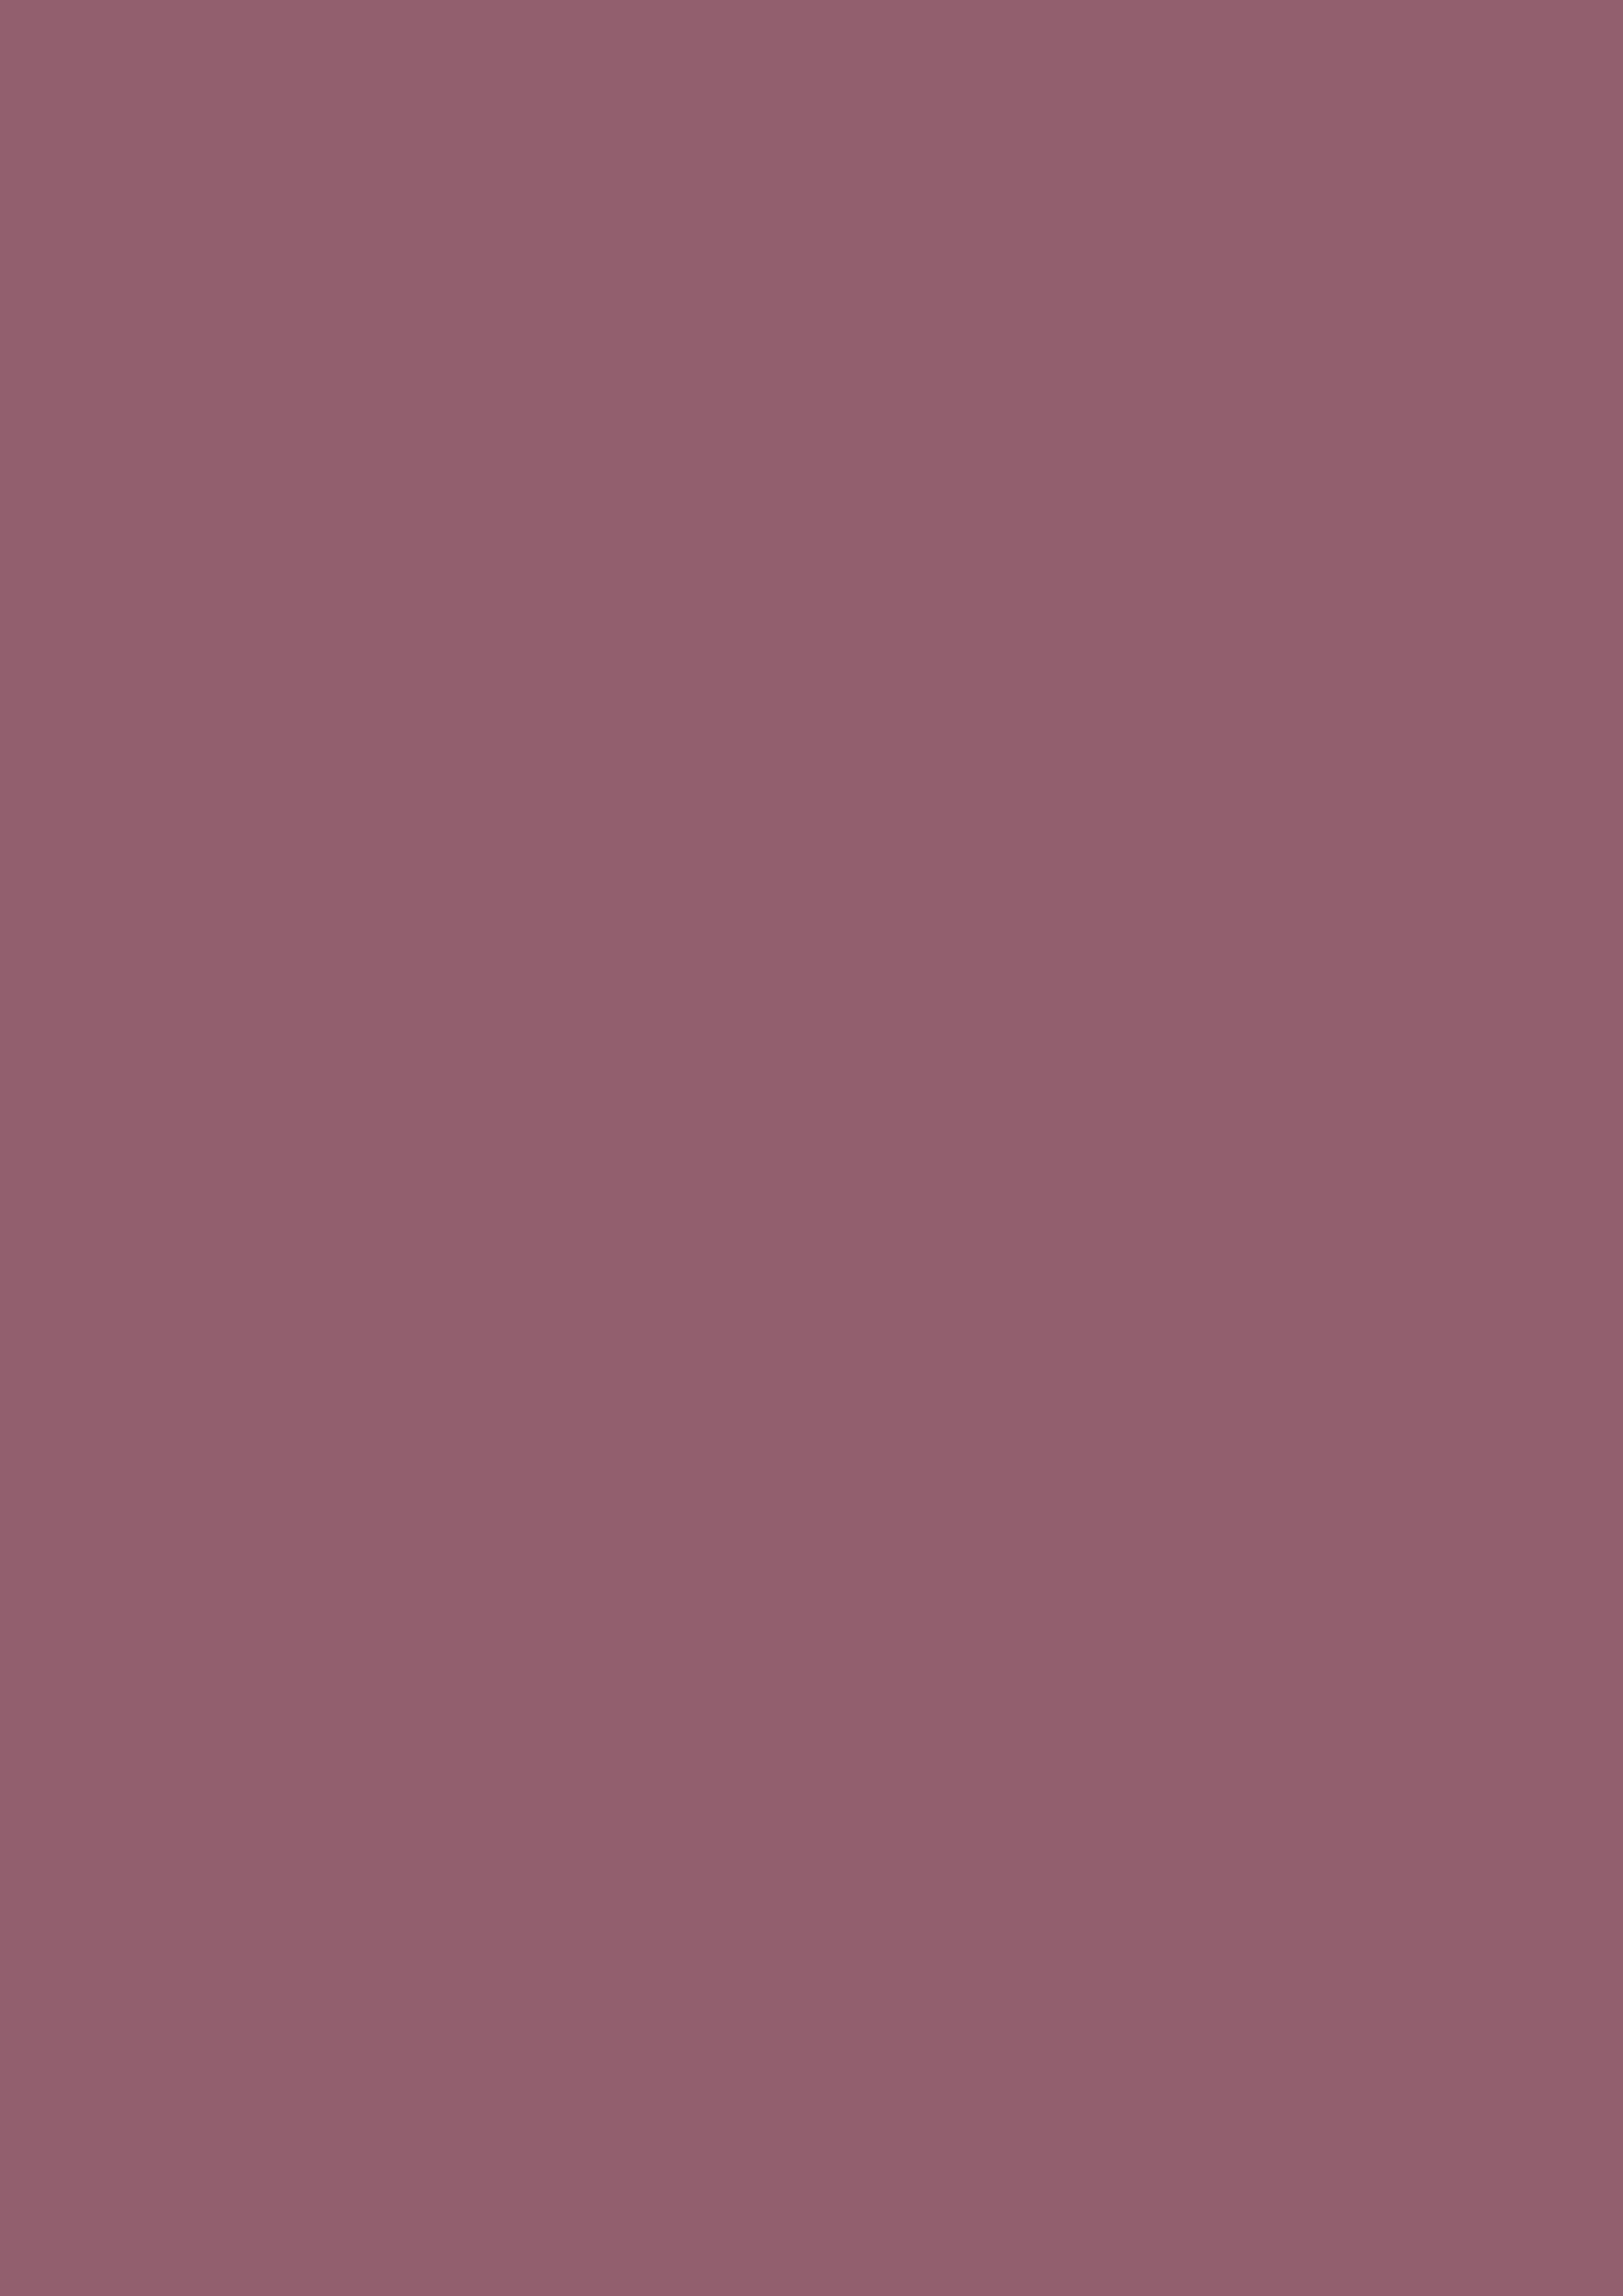 2480x3508 Mauve Taupe Solid Color Background